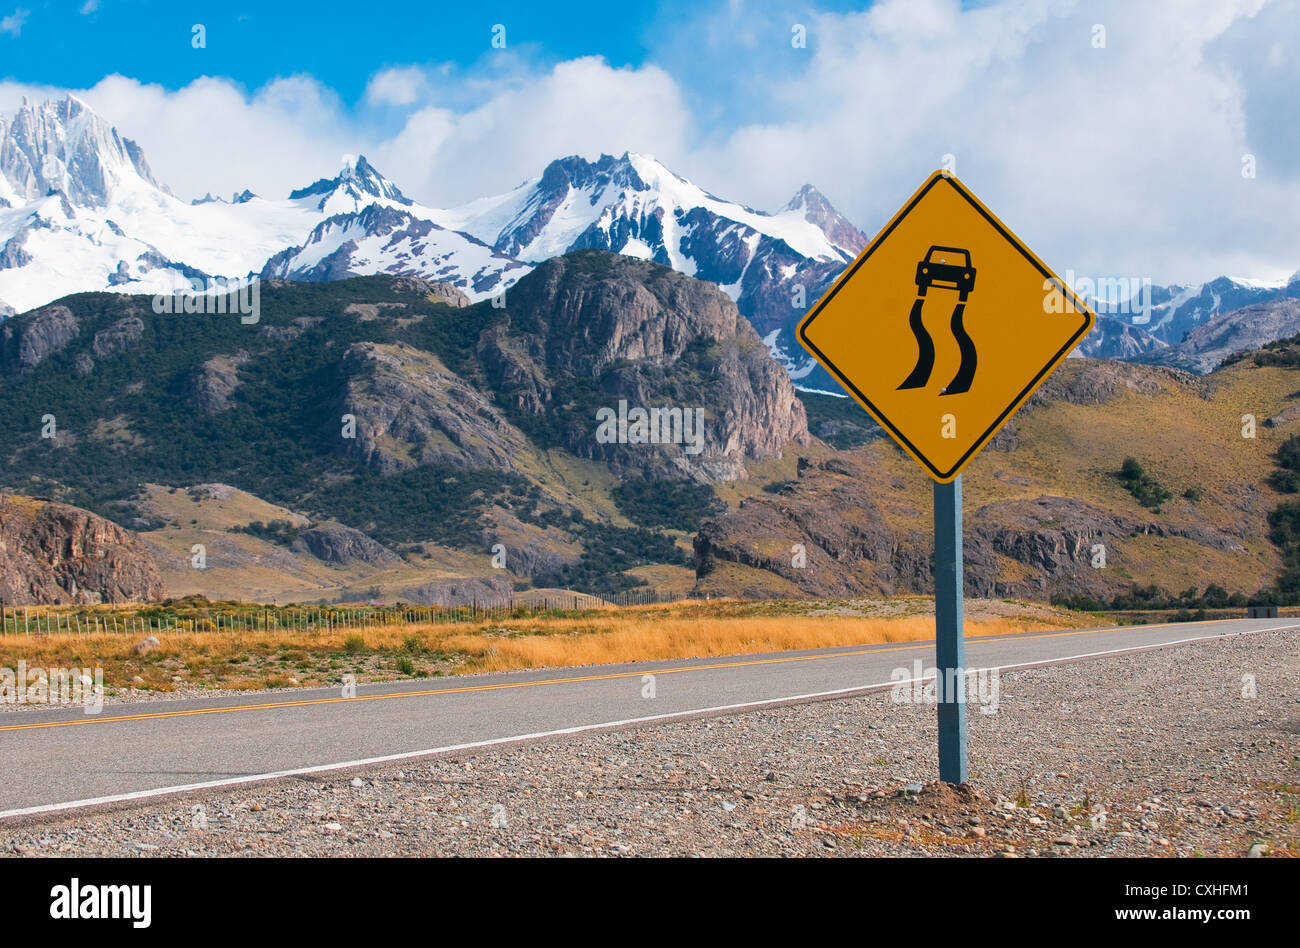 slippery when wet warning road sign - Stock Image